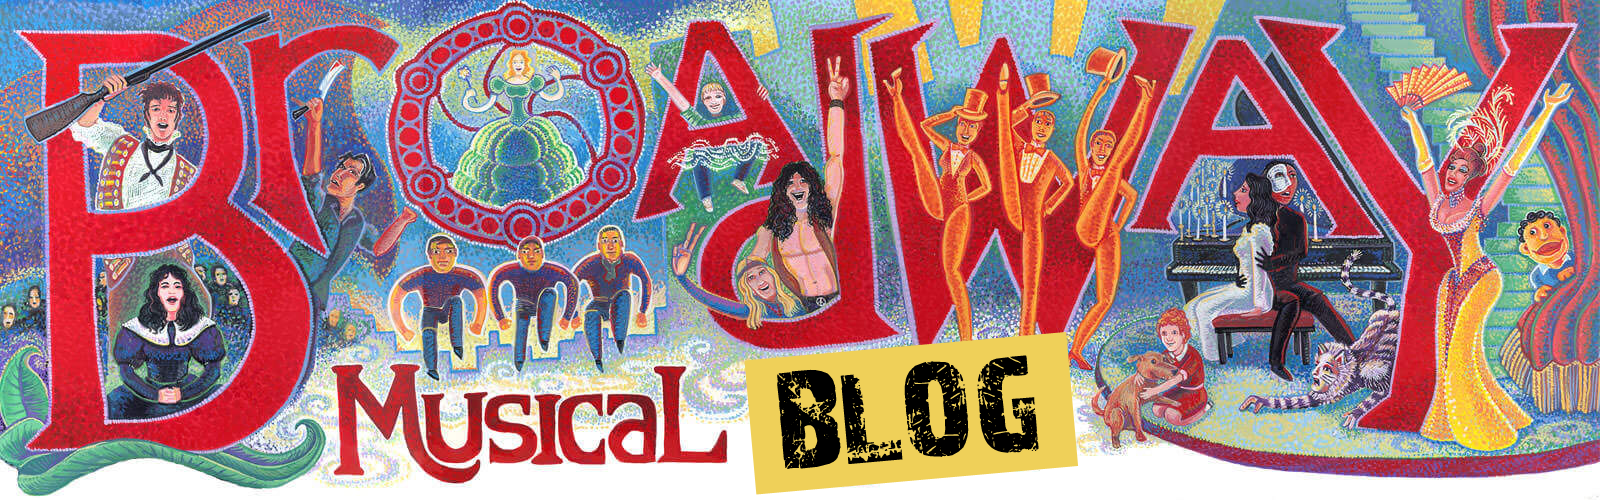 Broadway Musical Blog - Musical theater news and gossip from the Great White Way